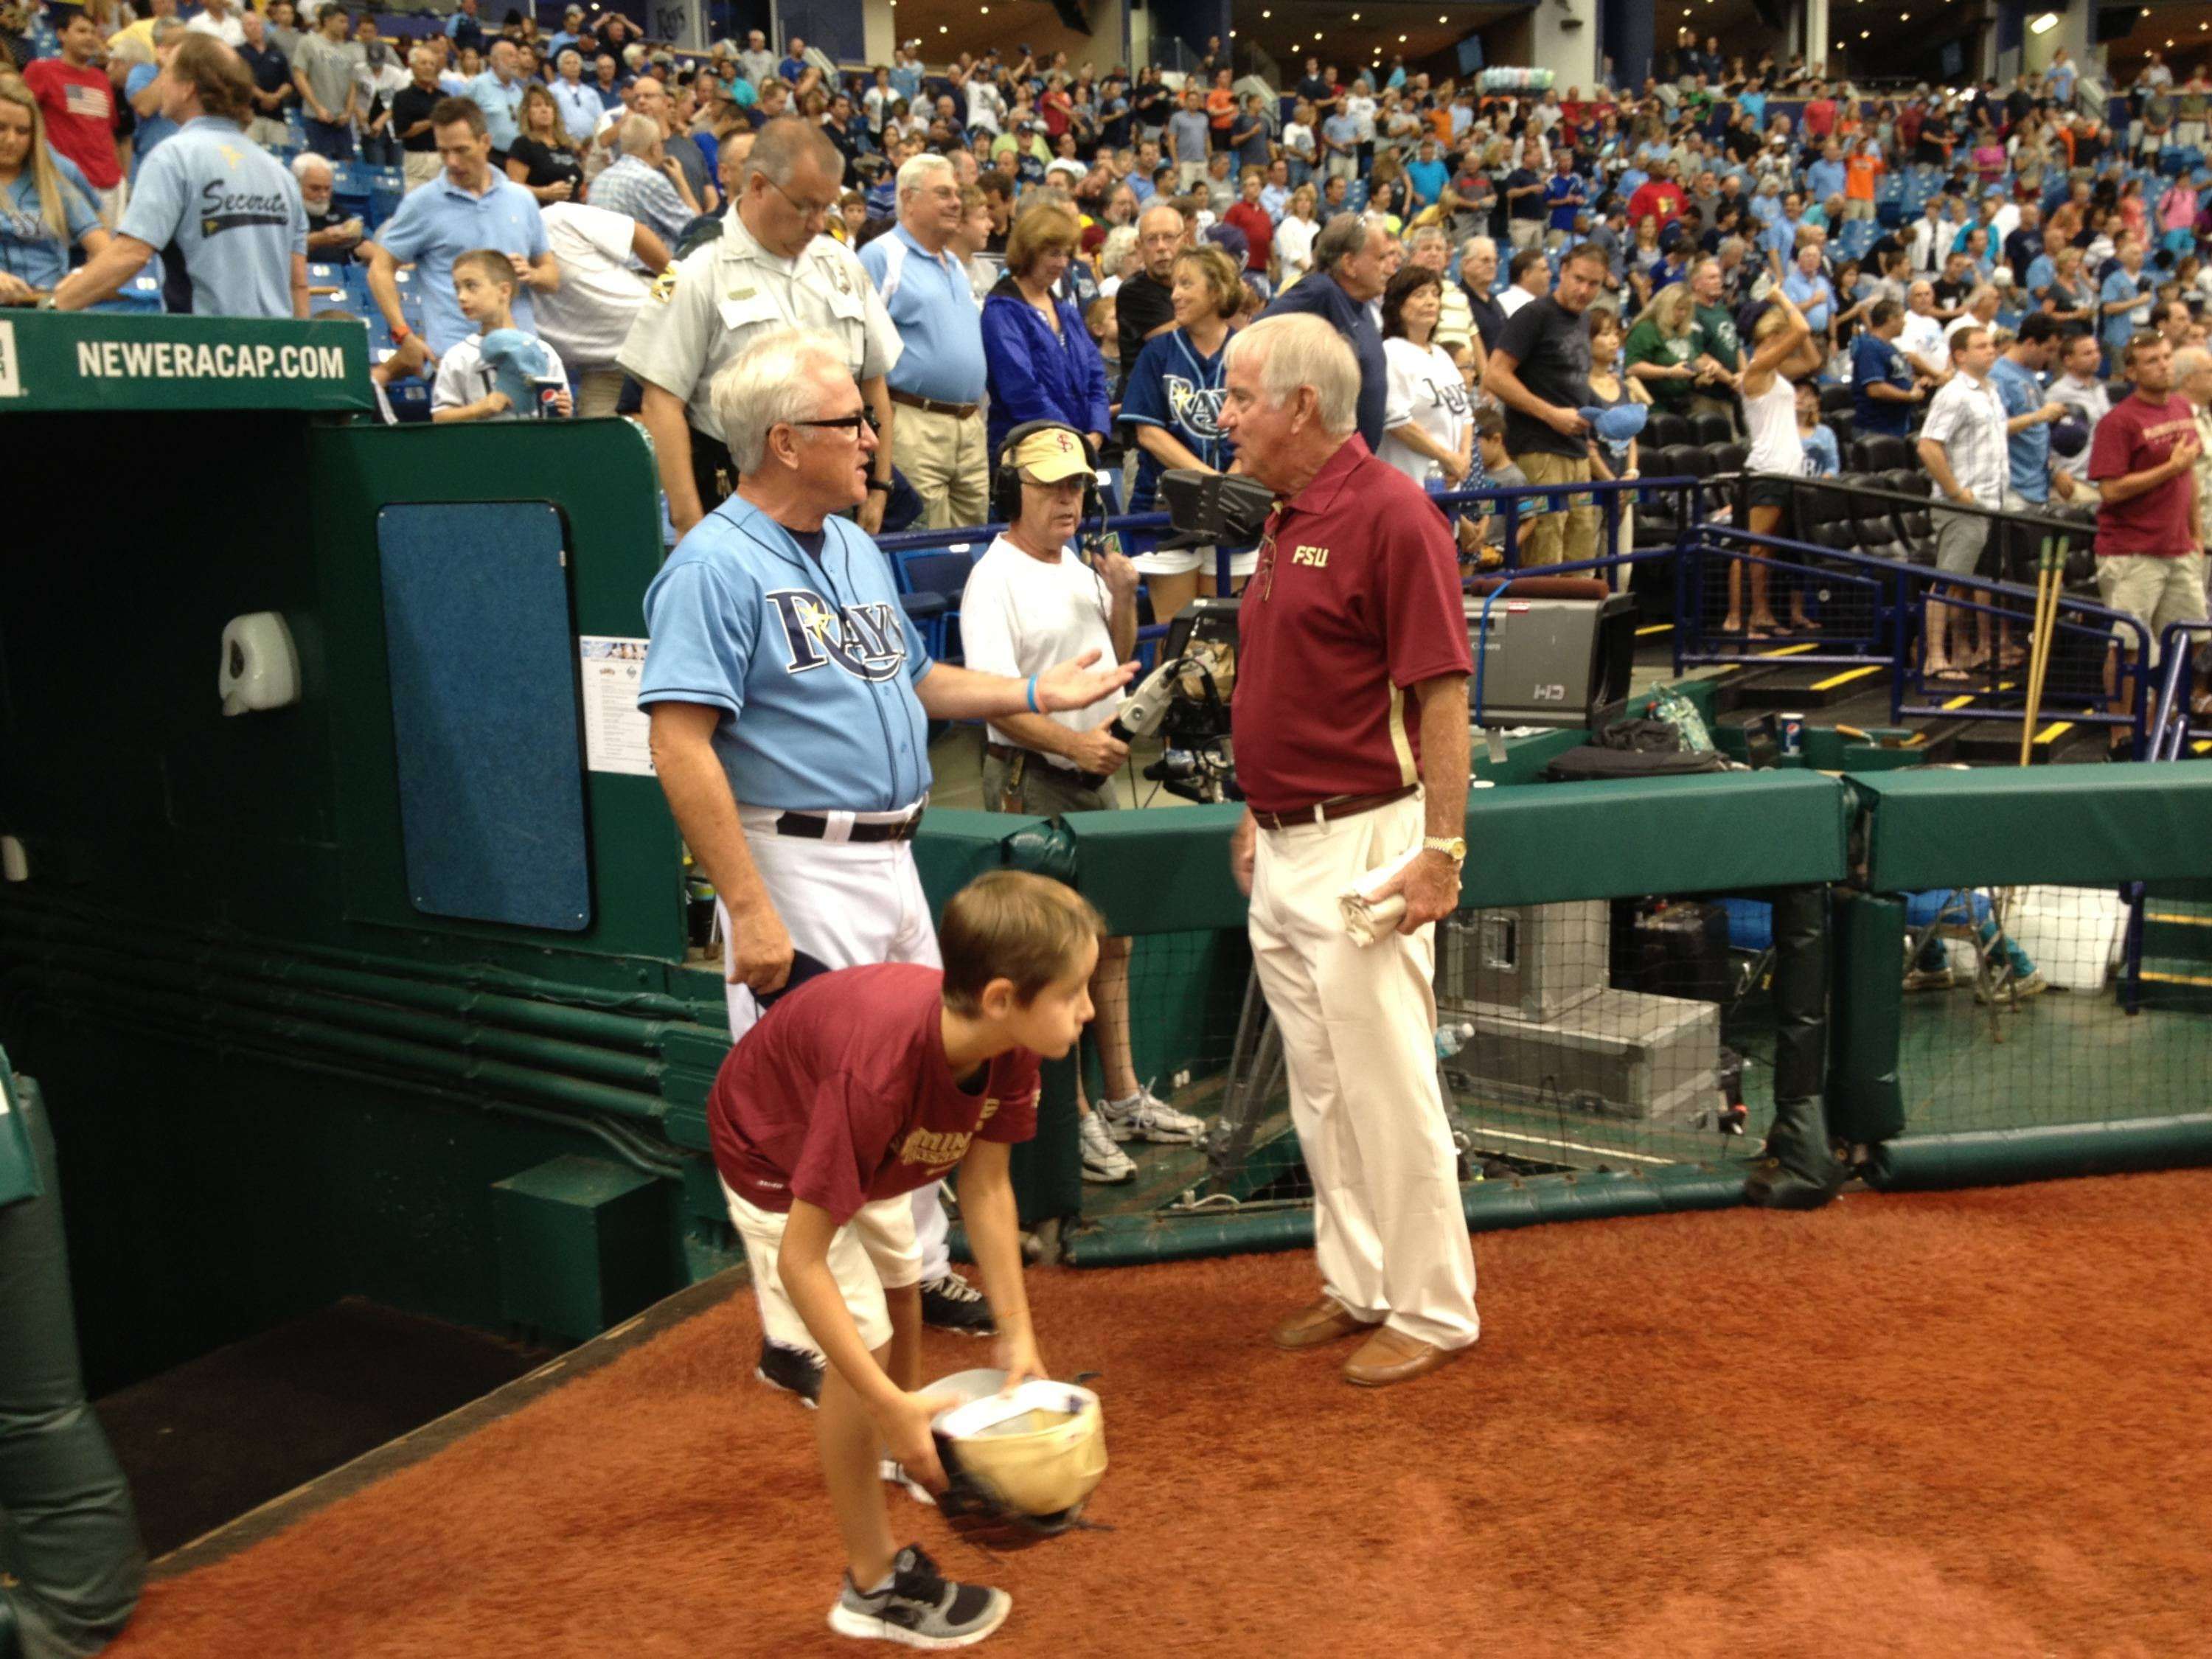 FSU head coach Mike Martin speaks with Tampa Bay Rays manager Joe Maddon